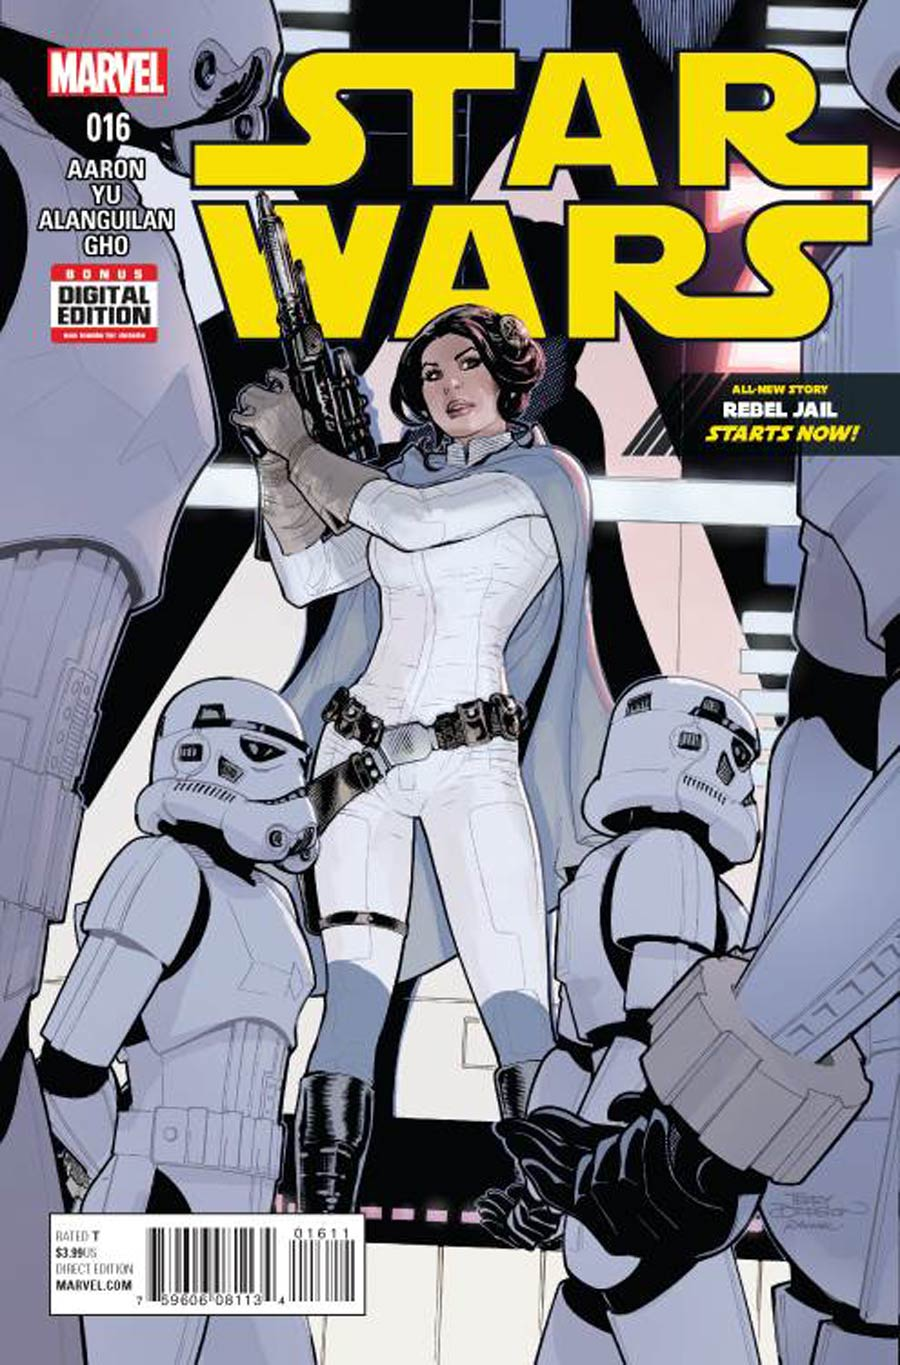 Star Wars Vol 4 #16 Cover A Regular Terry Dodson Cover